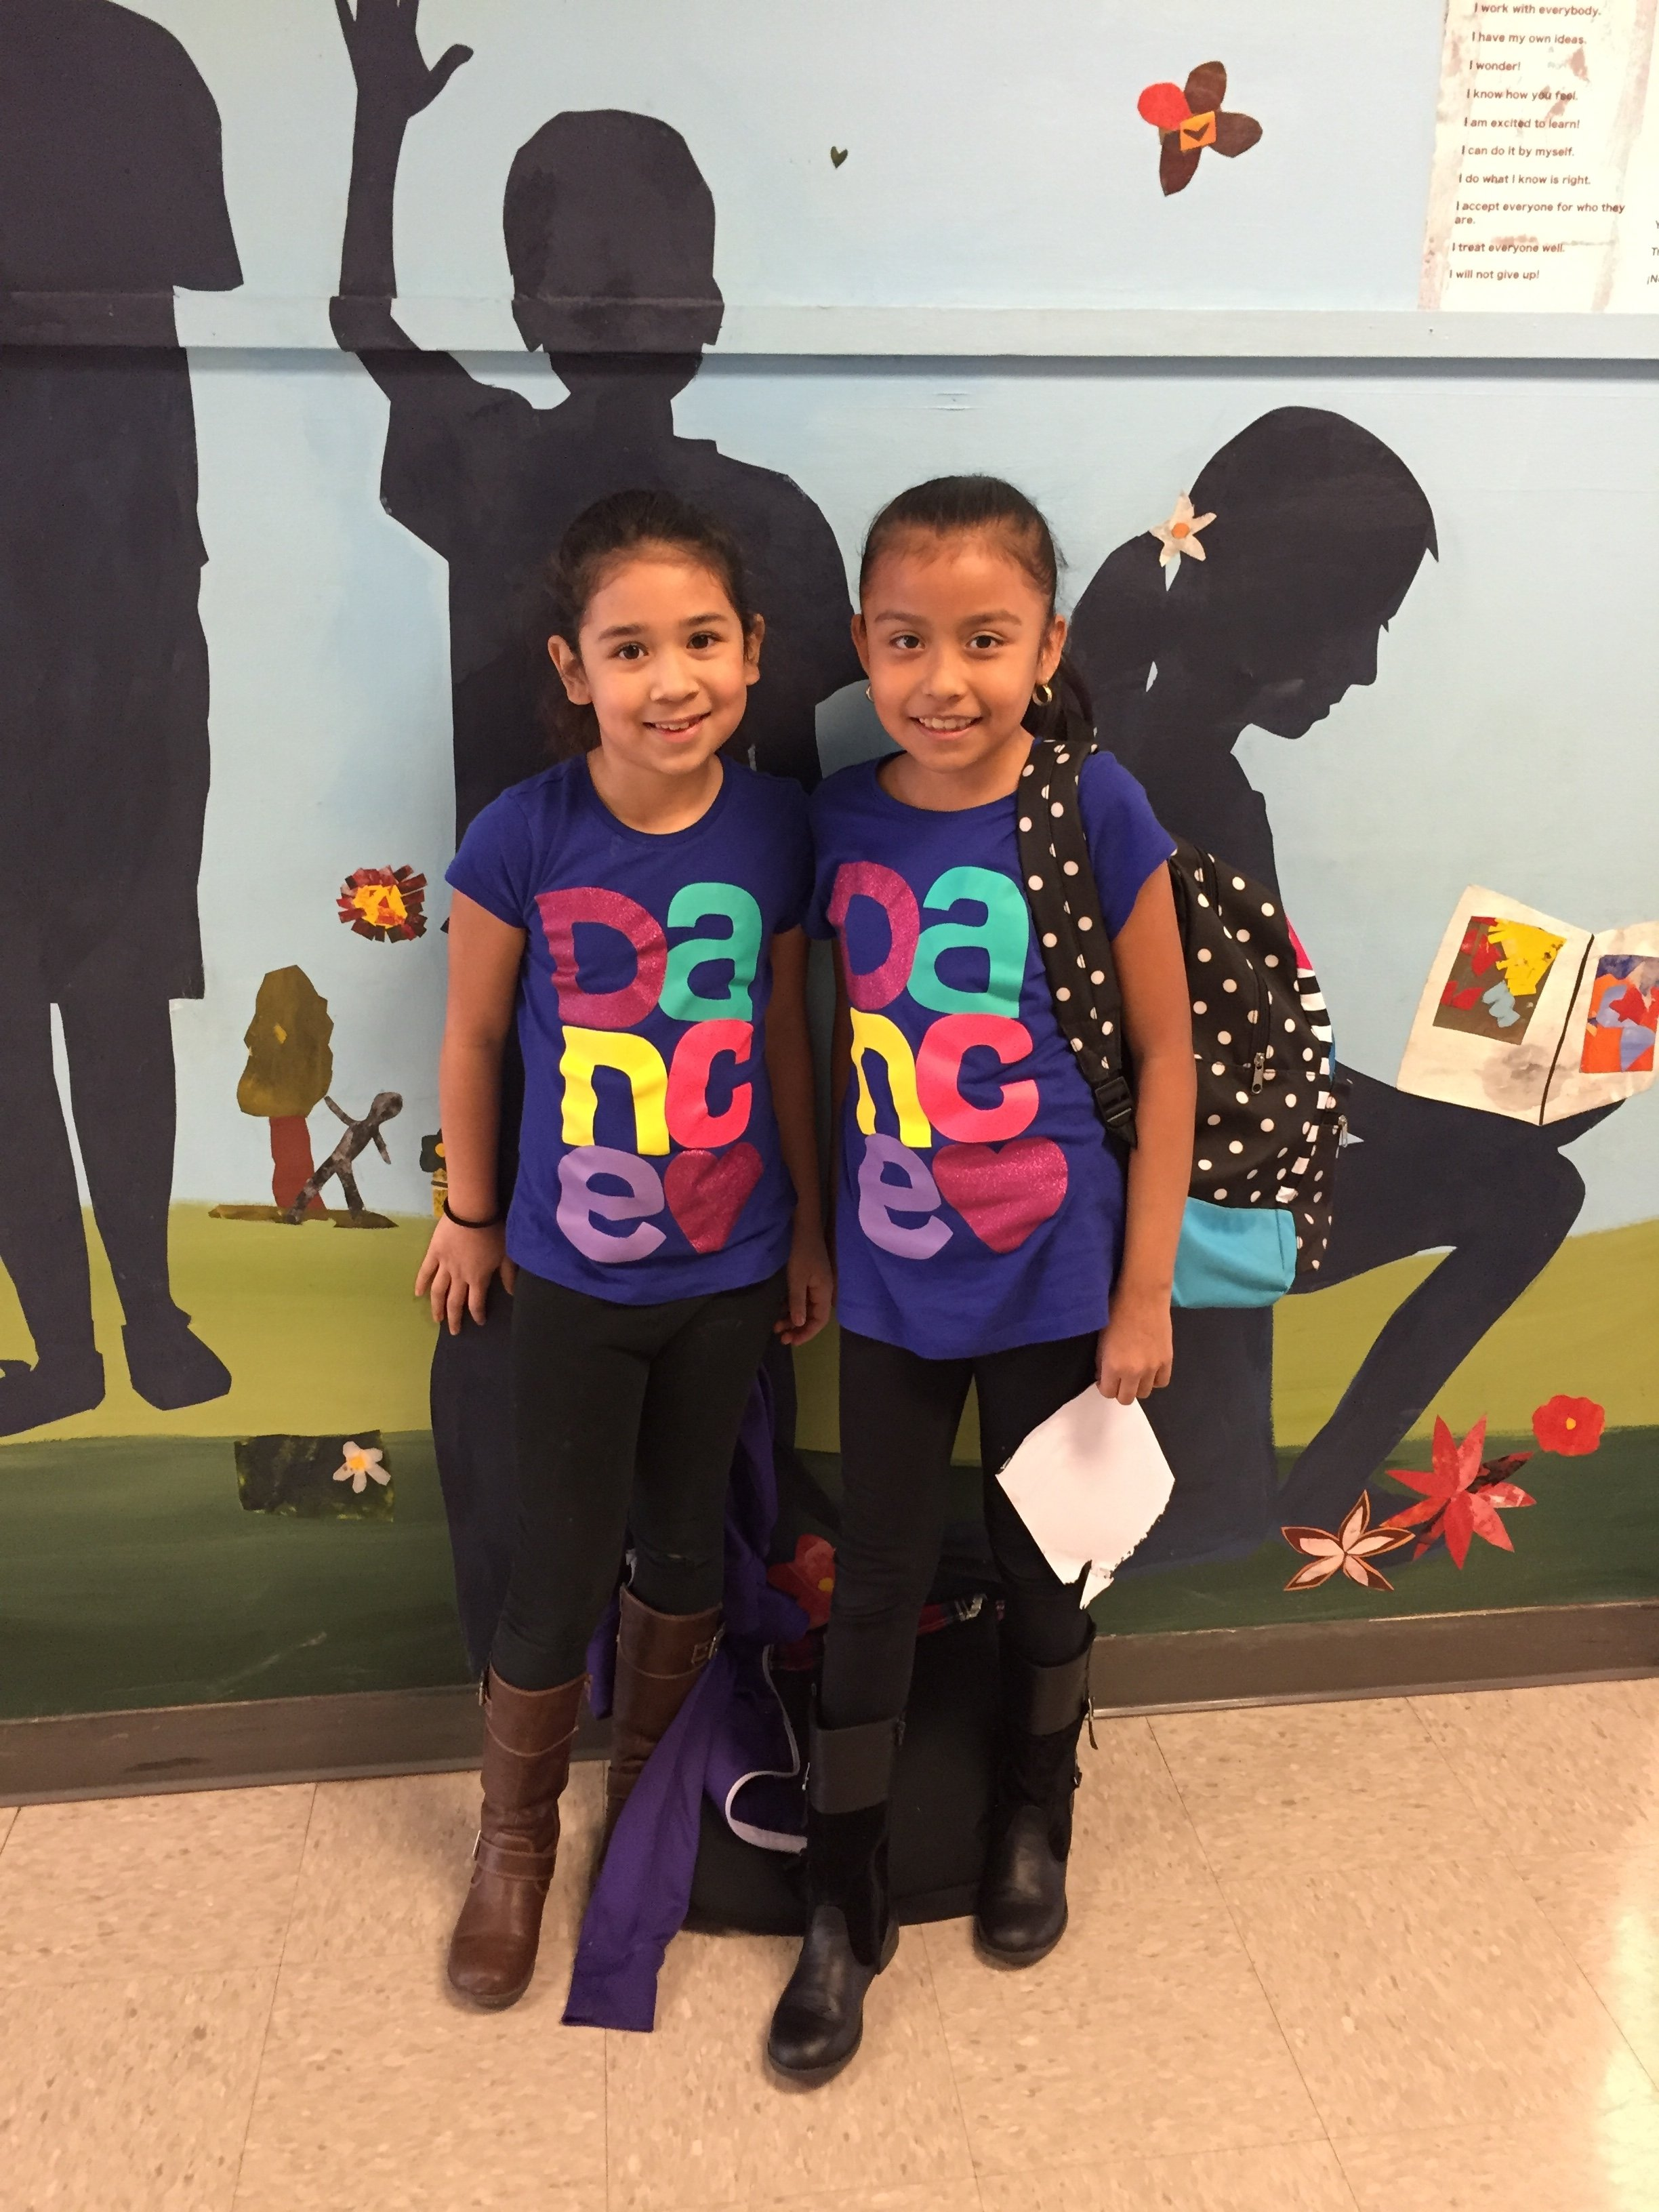 10 Ideal Twin Ideas For Twin Day nellie muir elementary school twin day 1 2020